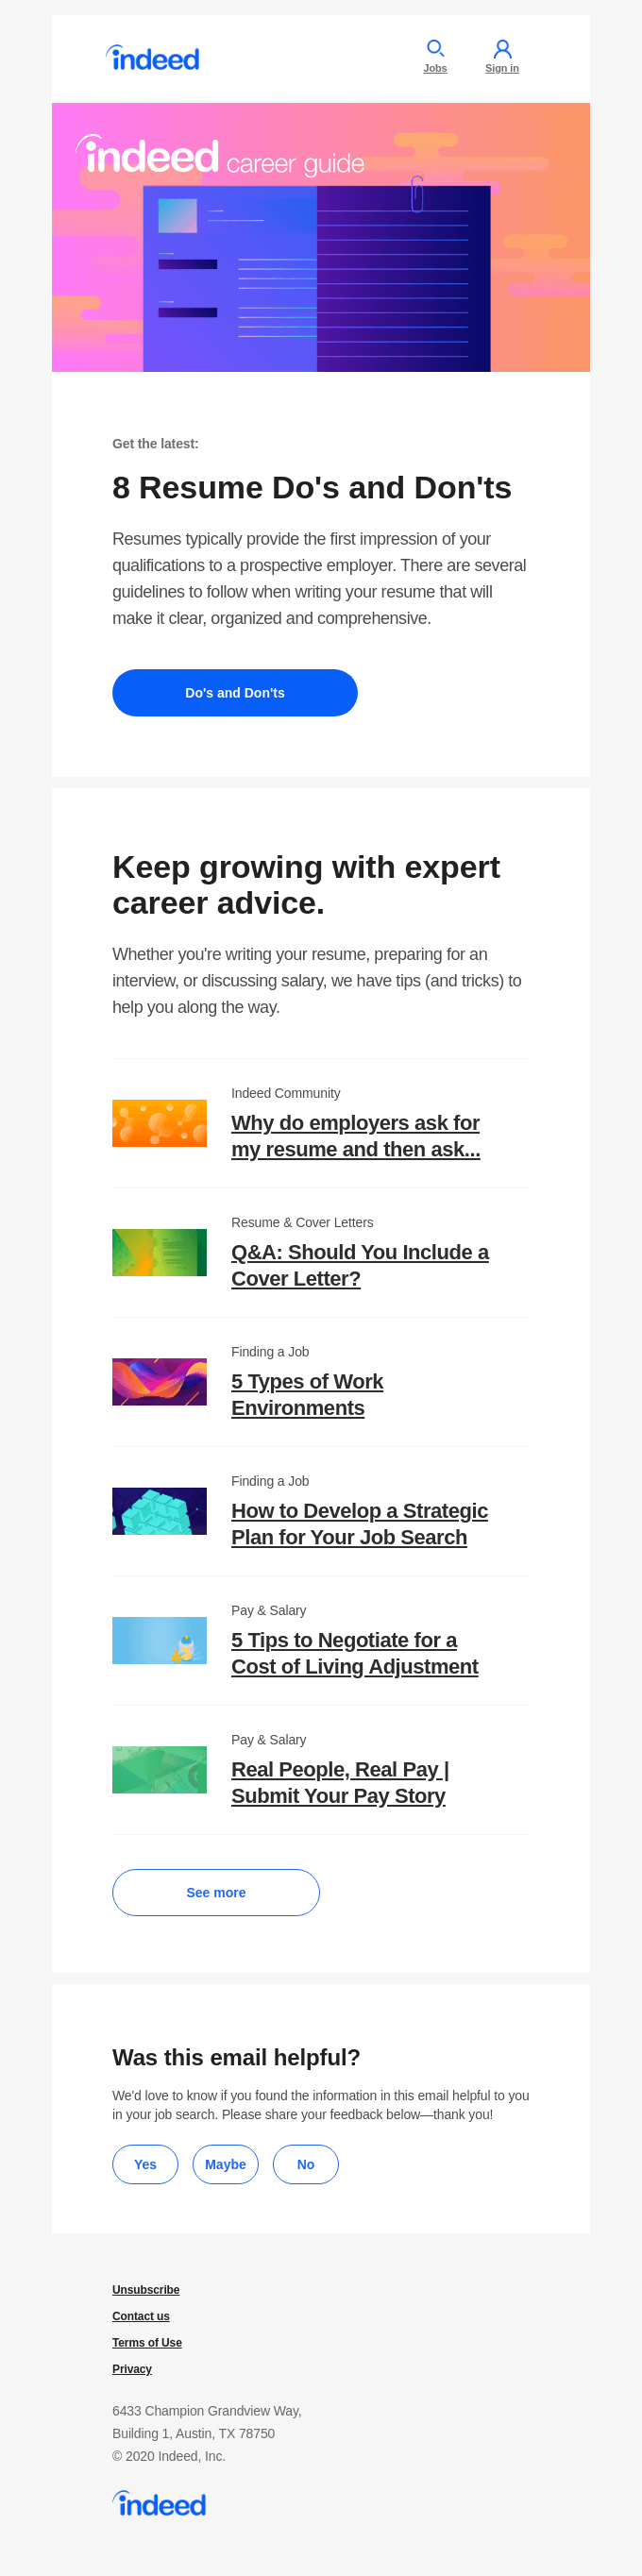 Indeed career guide email template